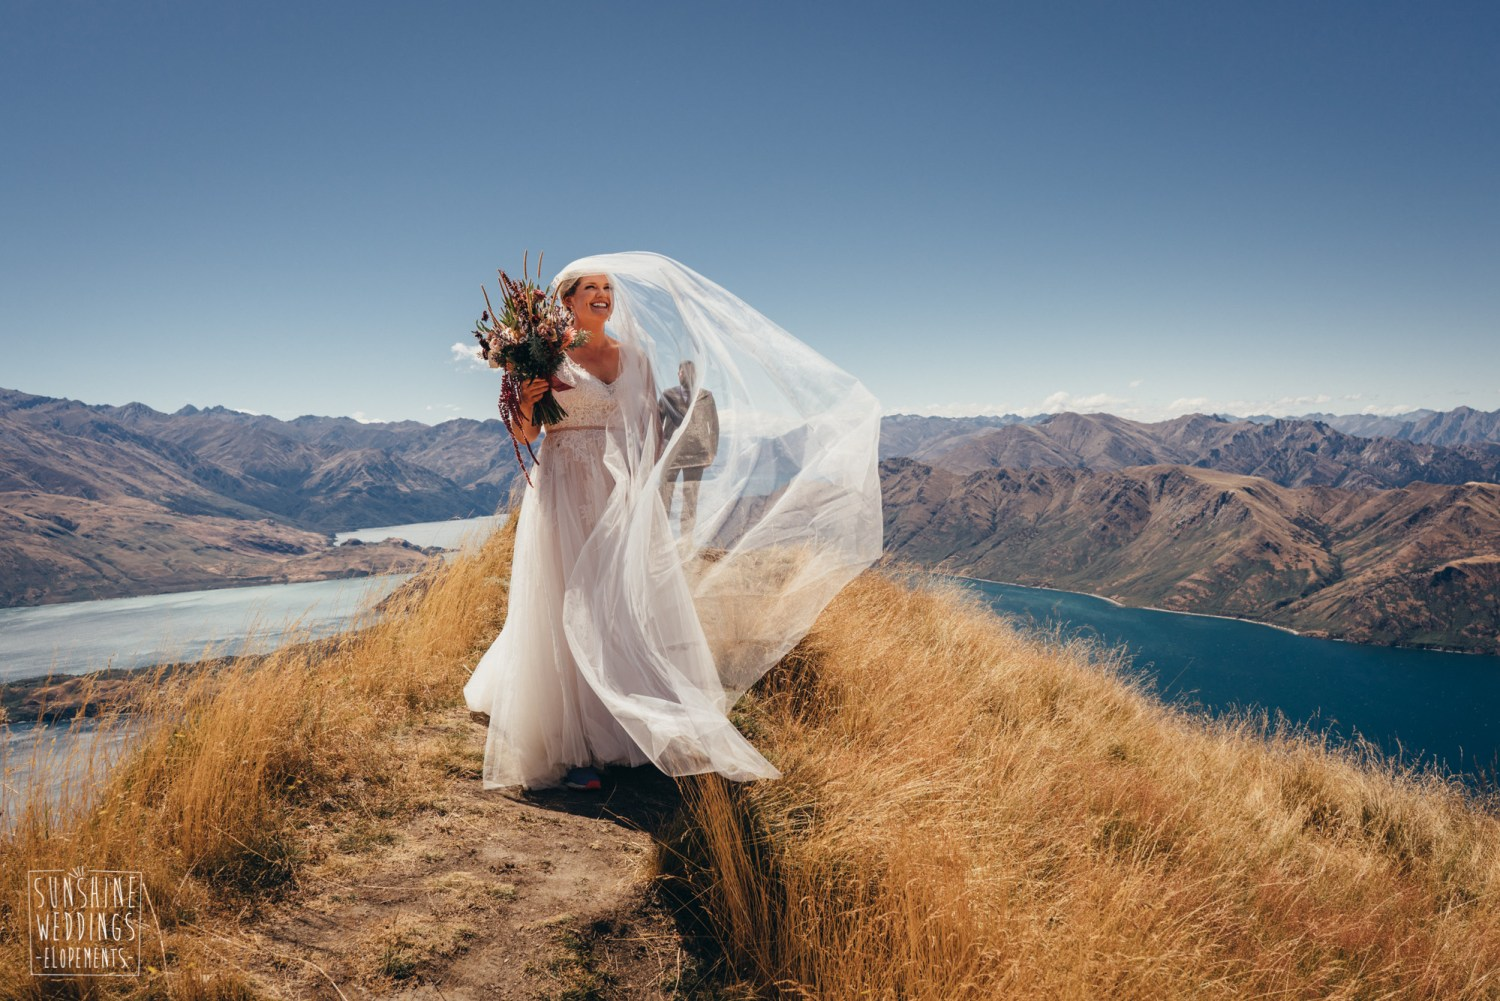 Bride and veil on Coromandel Peak